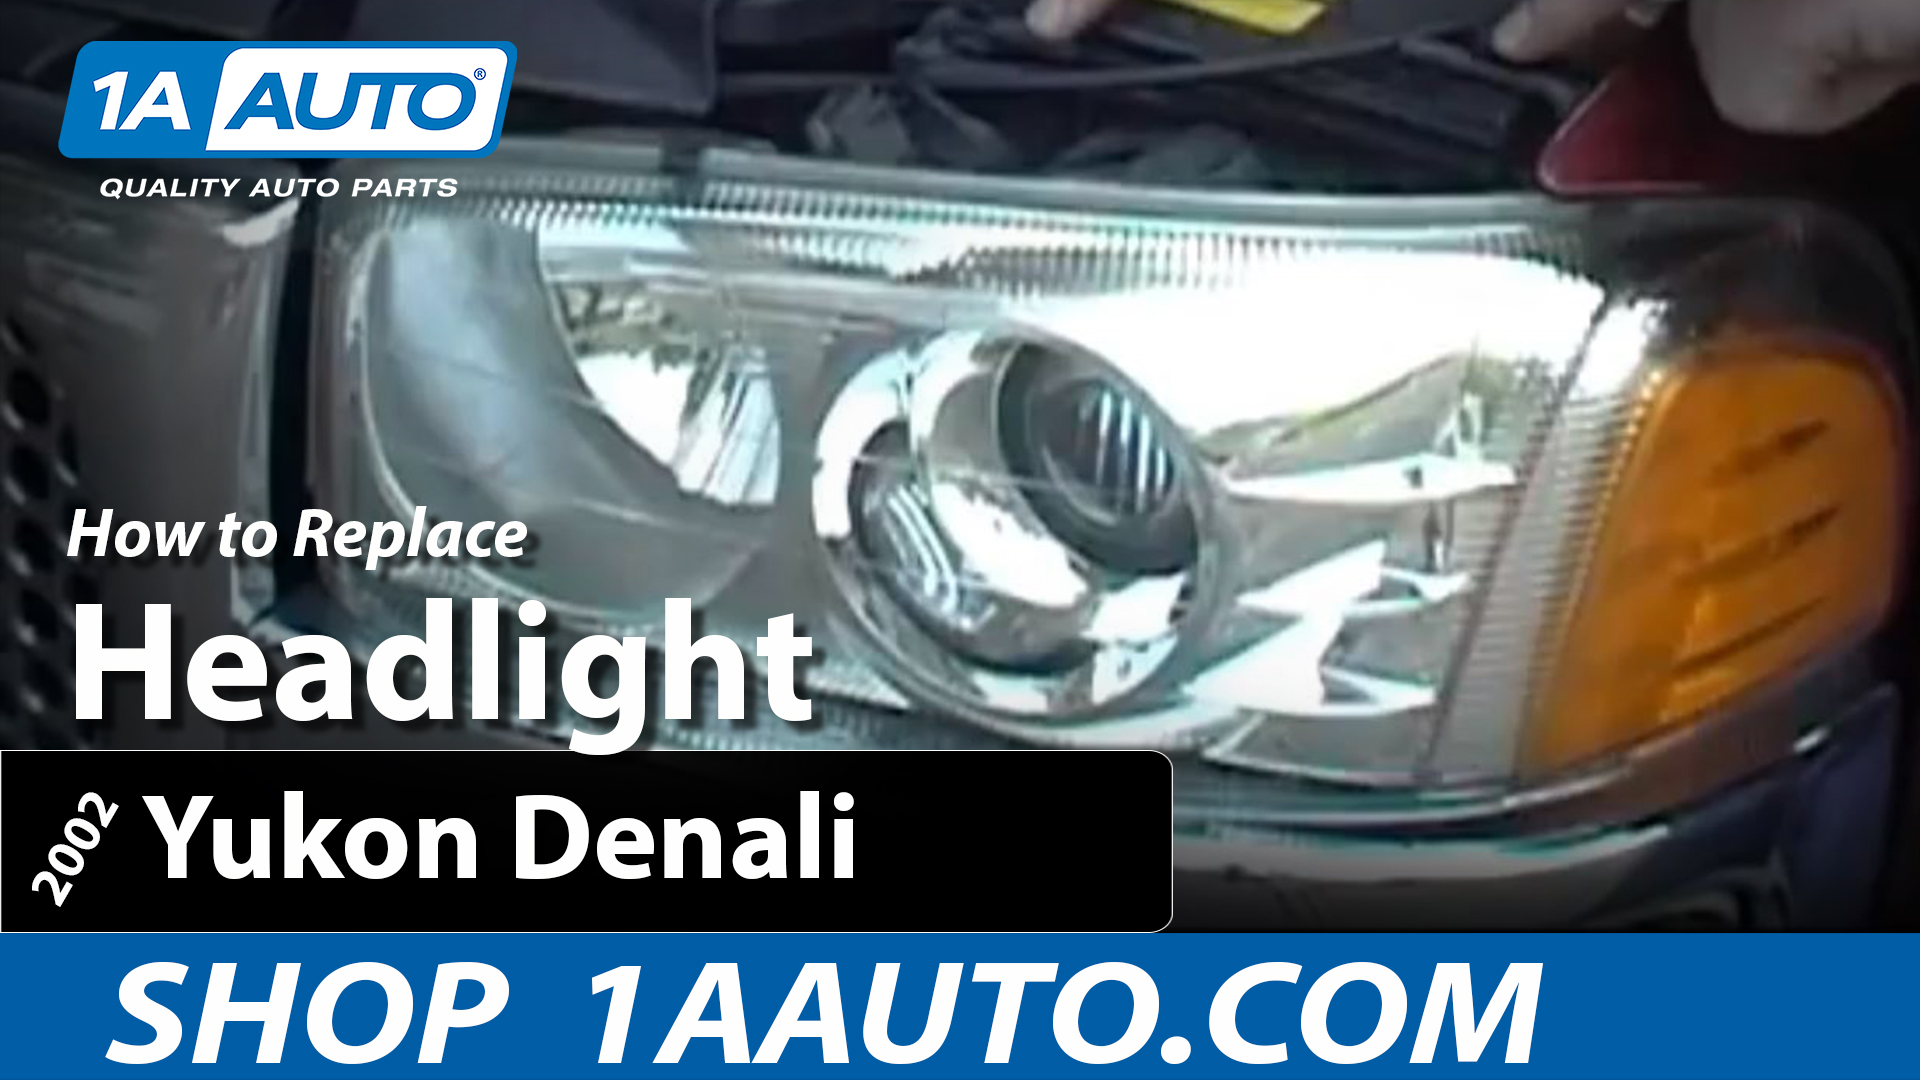 How To Replace Headlights 99-06 GMC Yukon